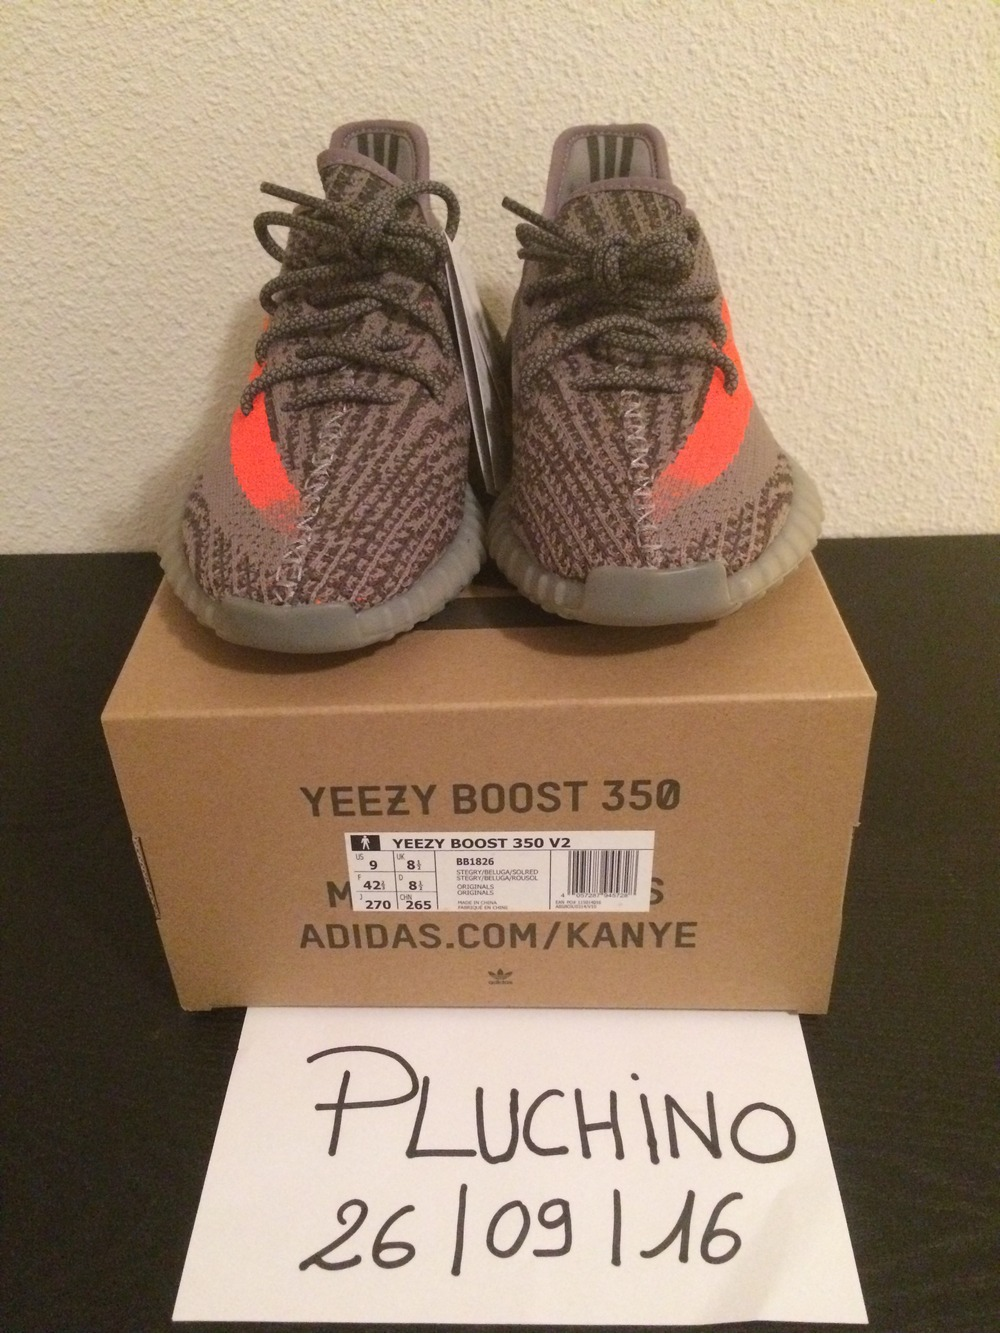 ADIDAS YEEZY BOOST 350 v2 BY 9611 IN HAND SPLY Cheap Sale